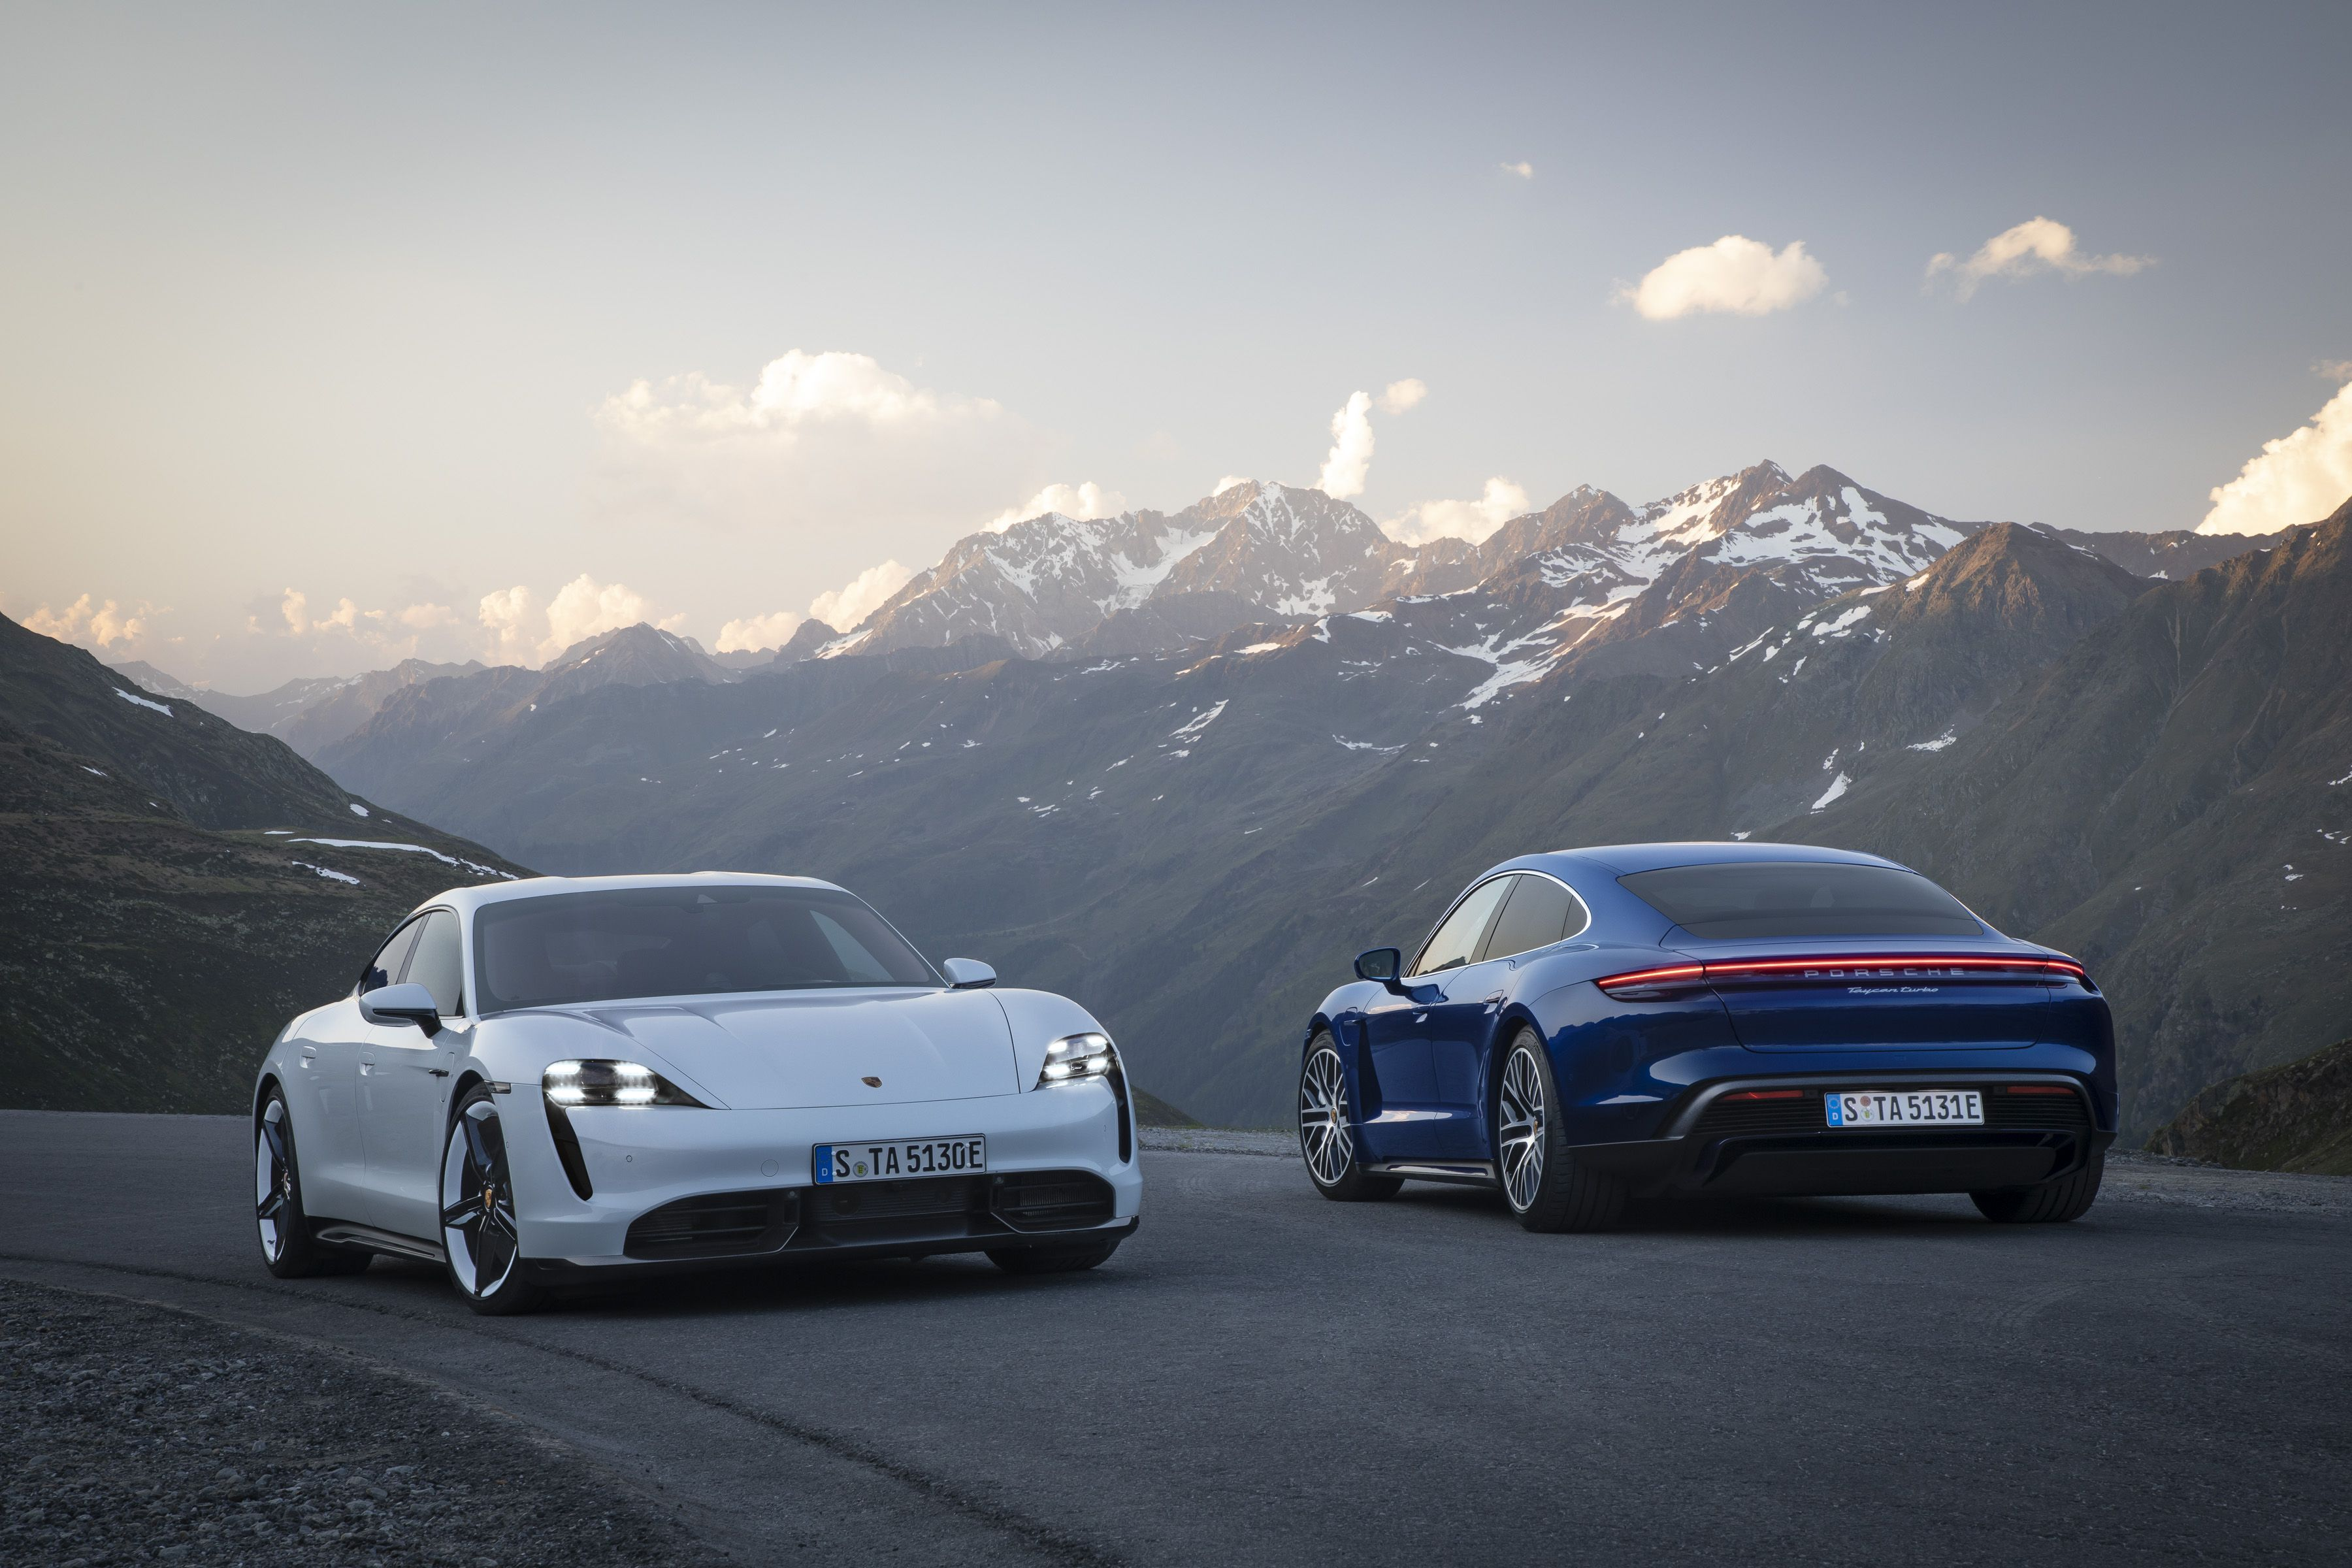 Porsche Taycan Specifications Acceleration Speed And Range Revealed For Porsche S First Ev